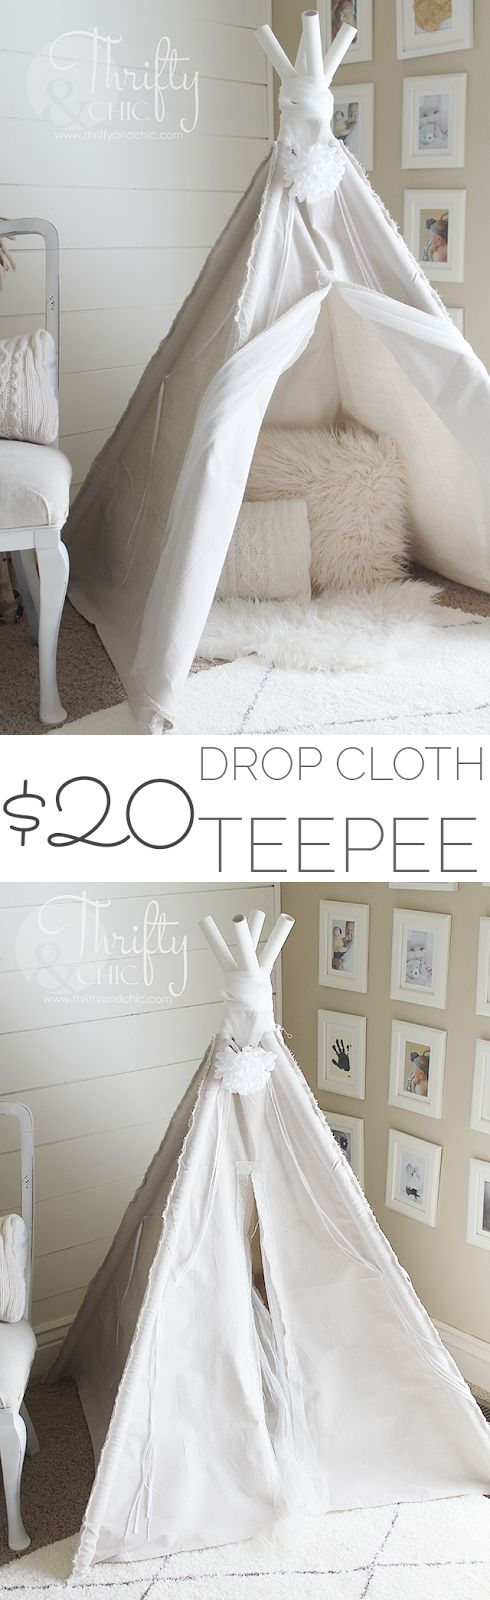 DIY 4 sided teepee made from a drop cloth!